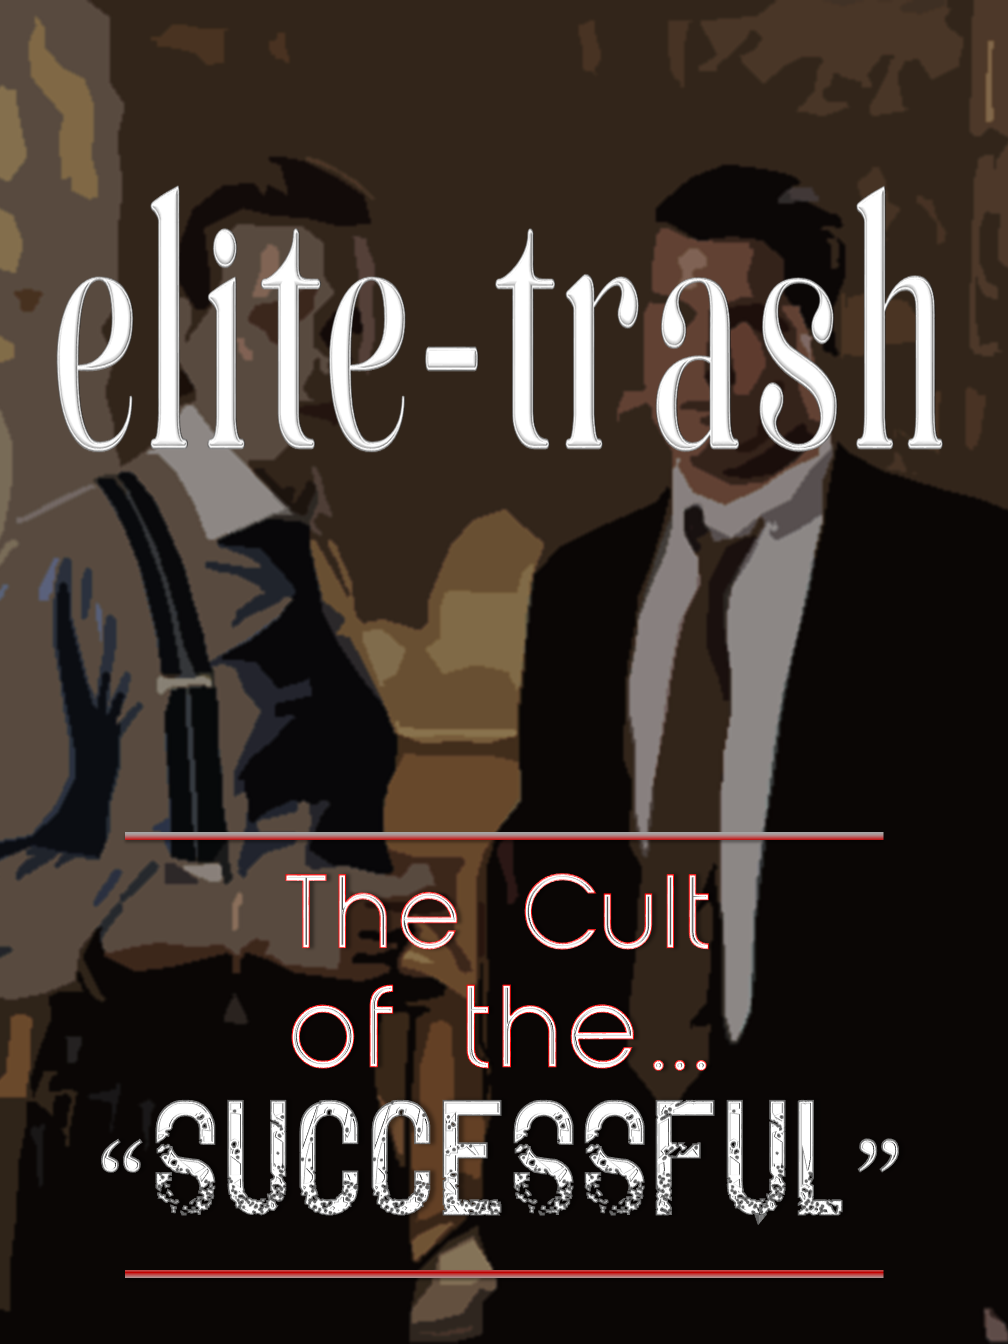 Elite-Trash!